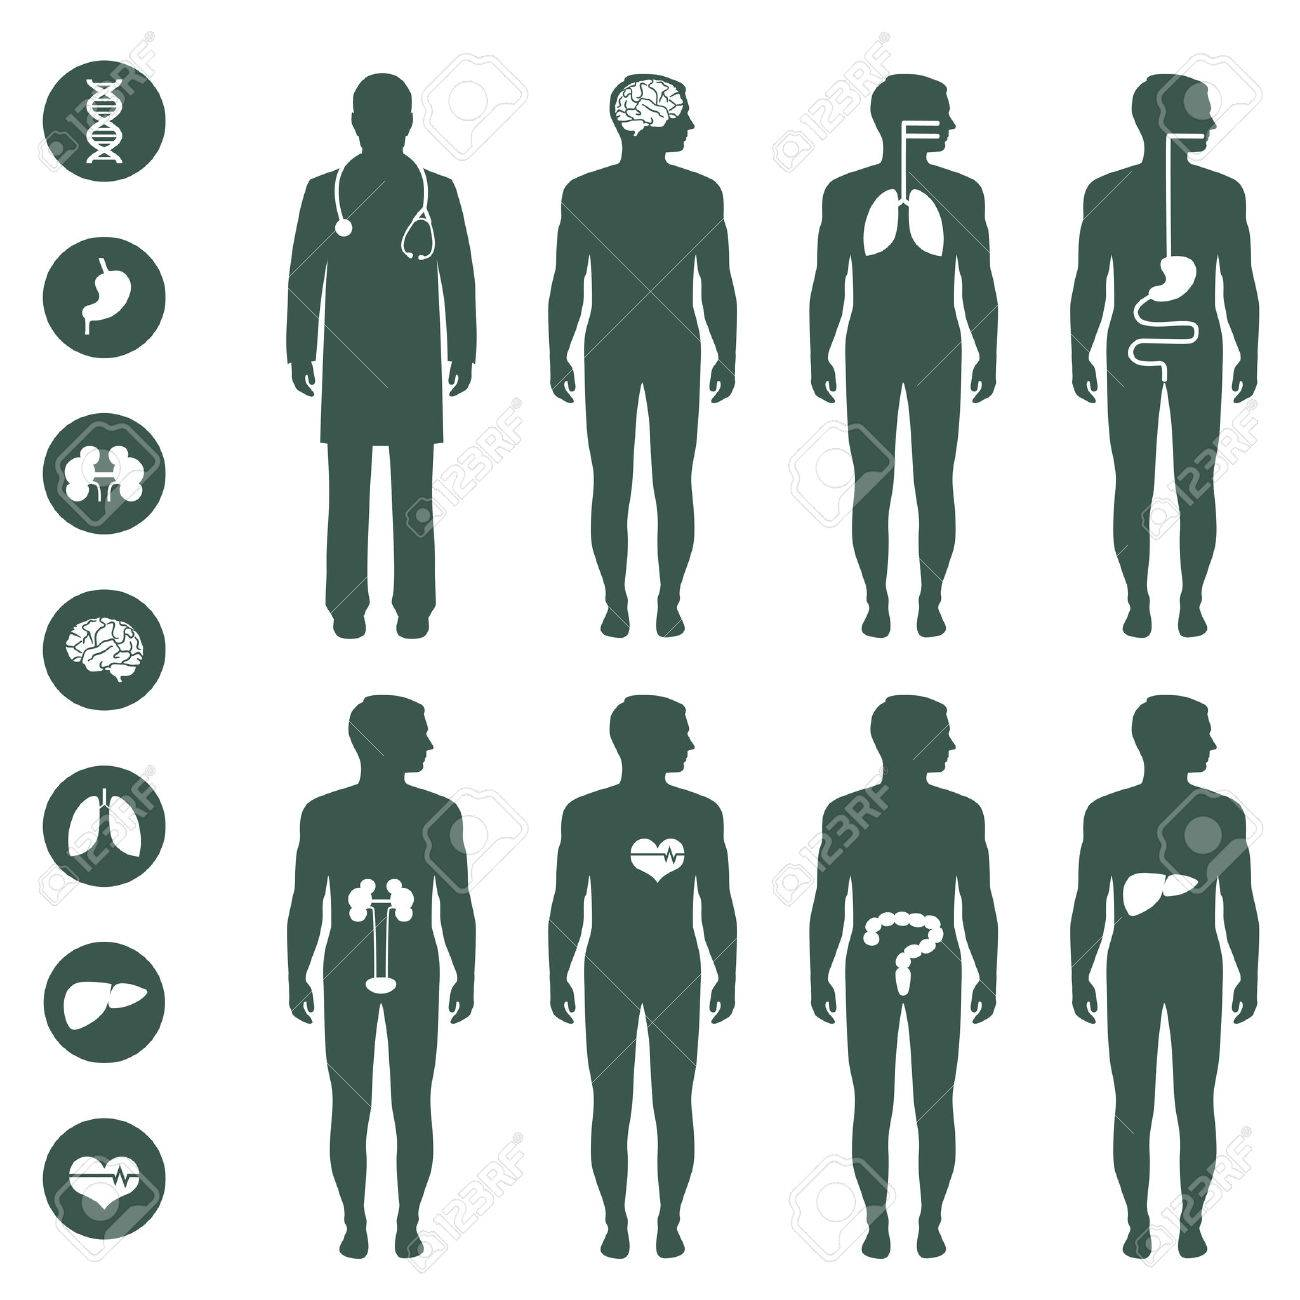 human body anatomy vector medical organs icon royalty free cliparts vectors and stock illustration image 37163663 human body anatomy vector medical organs icon